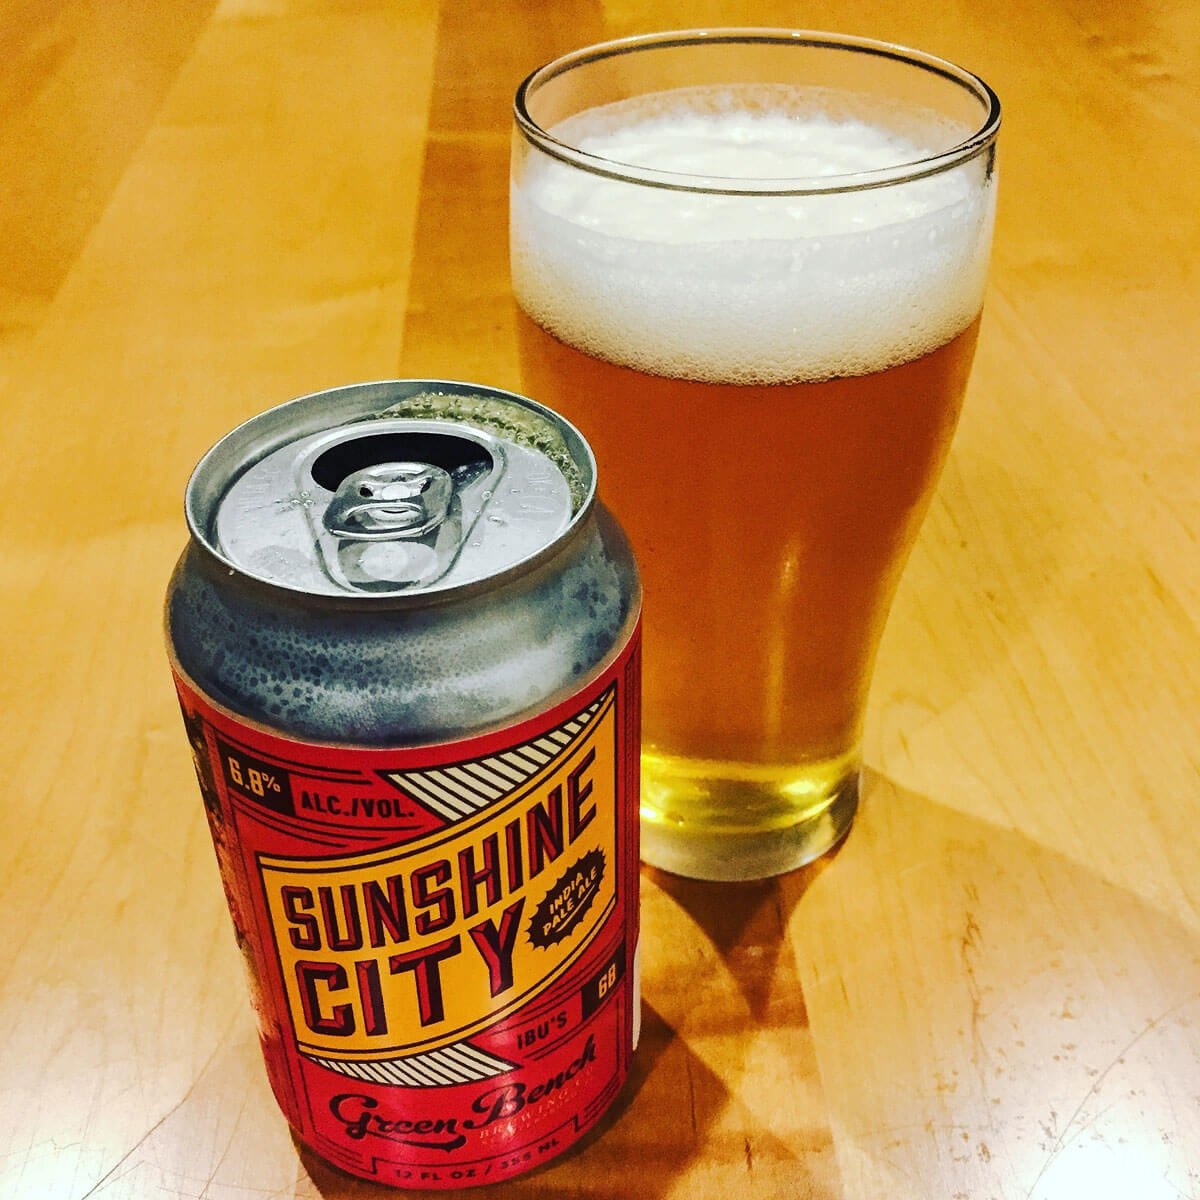 Sunshine City IPA, American IPA by Green Bench Brewing Co.